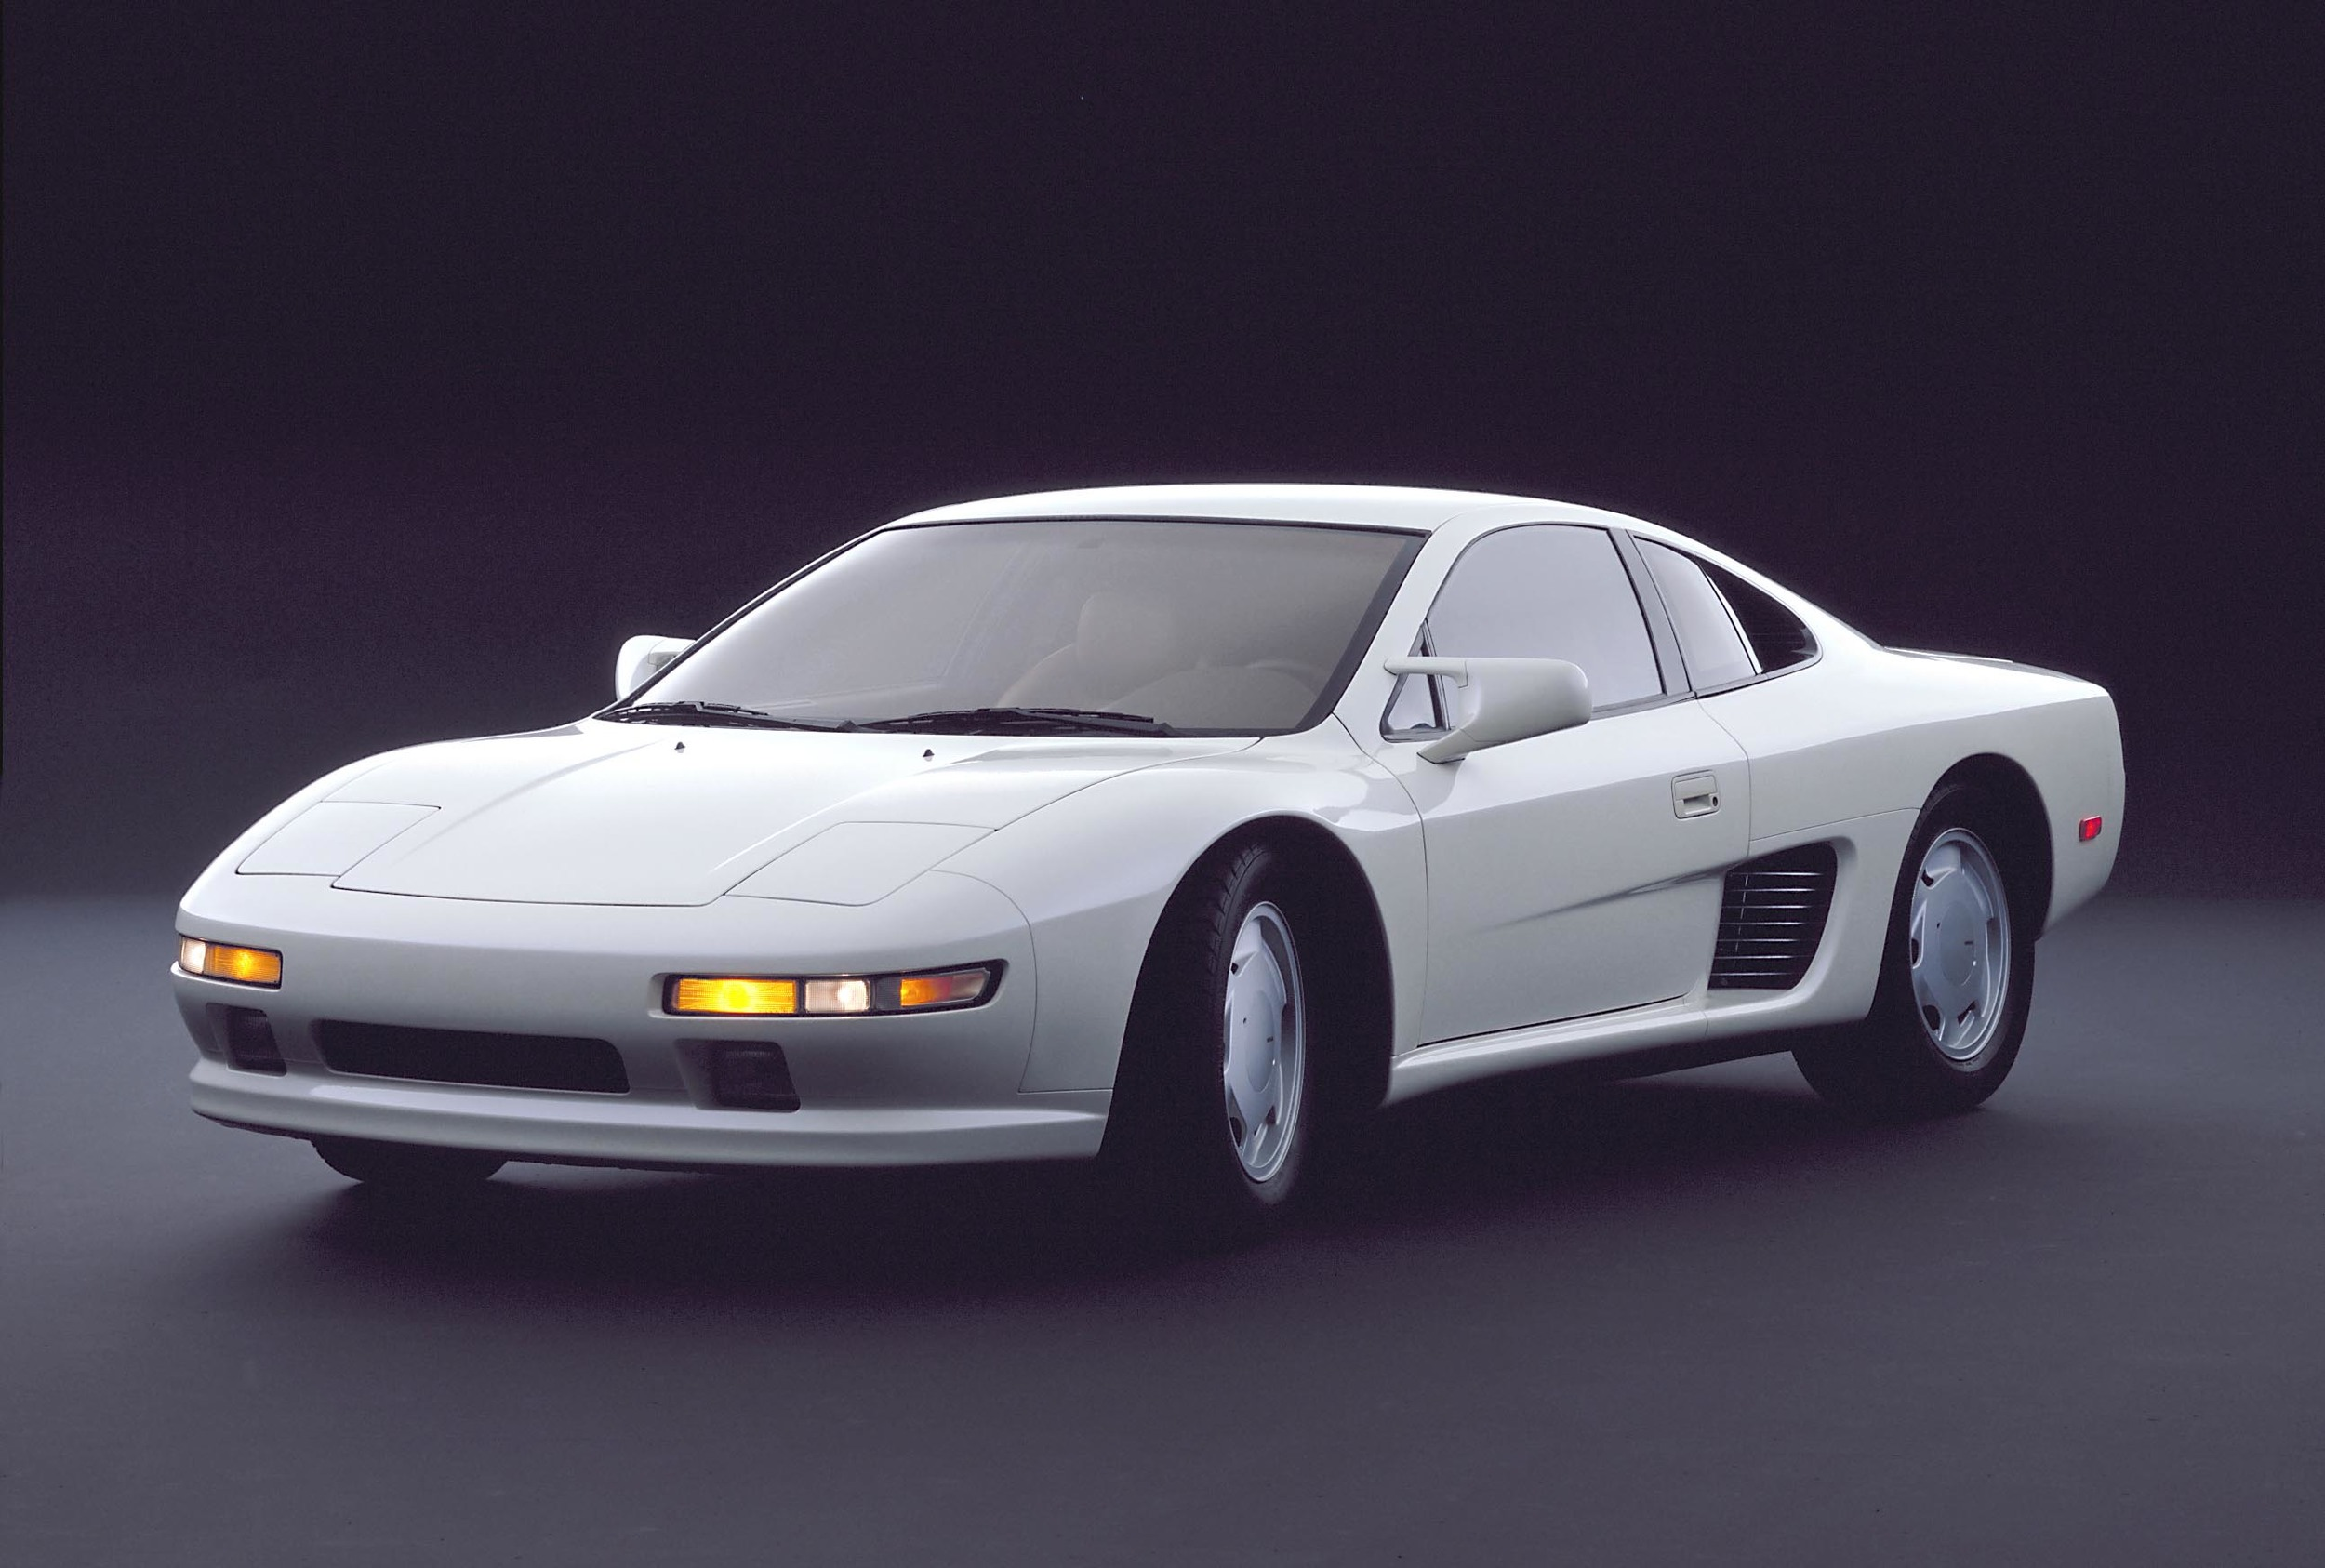 1987 Nissan MID4 Type II concept 01 - Retro Gallery Archive (Full Size)